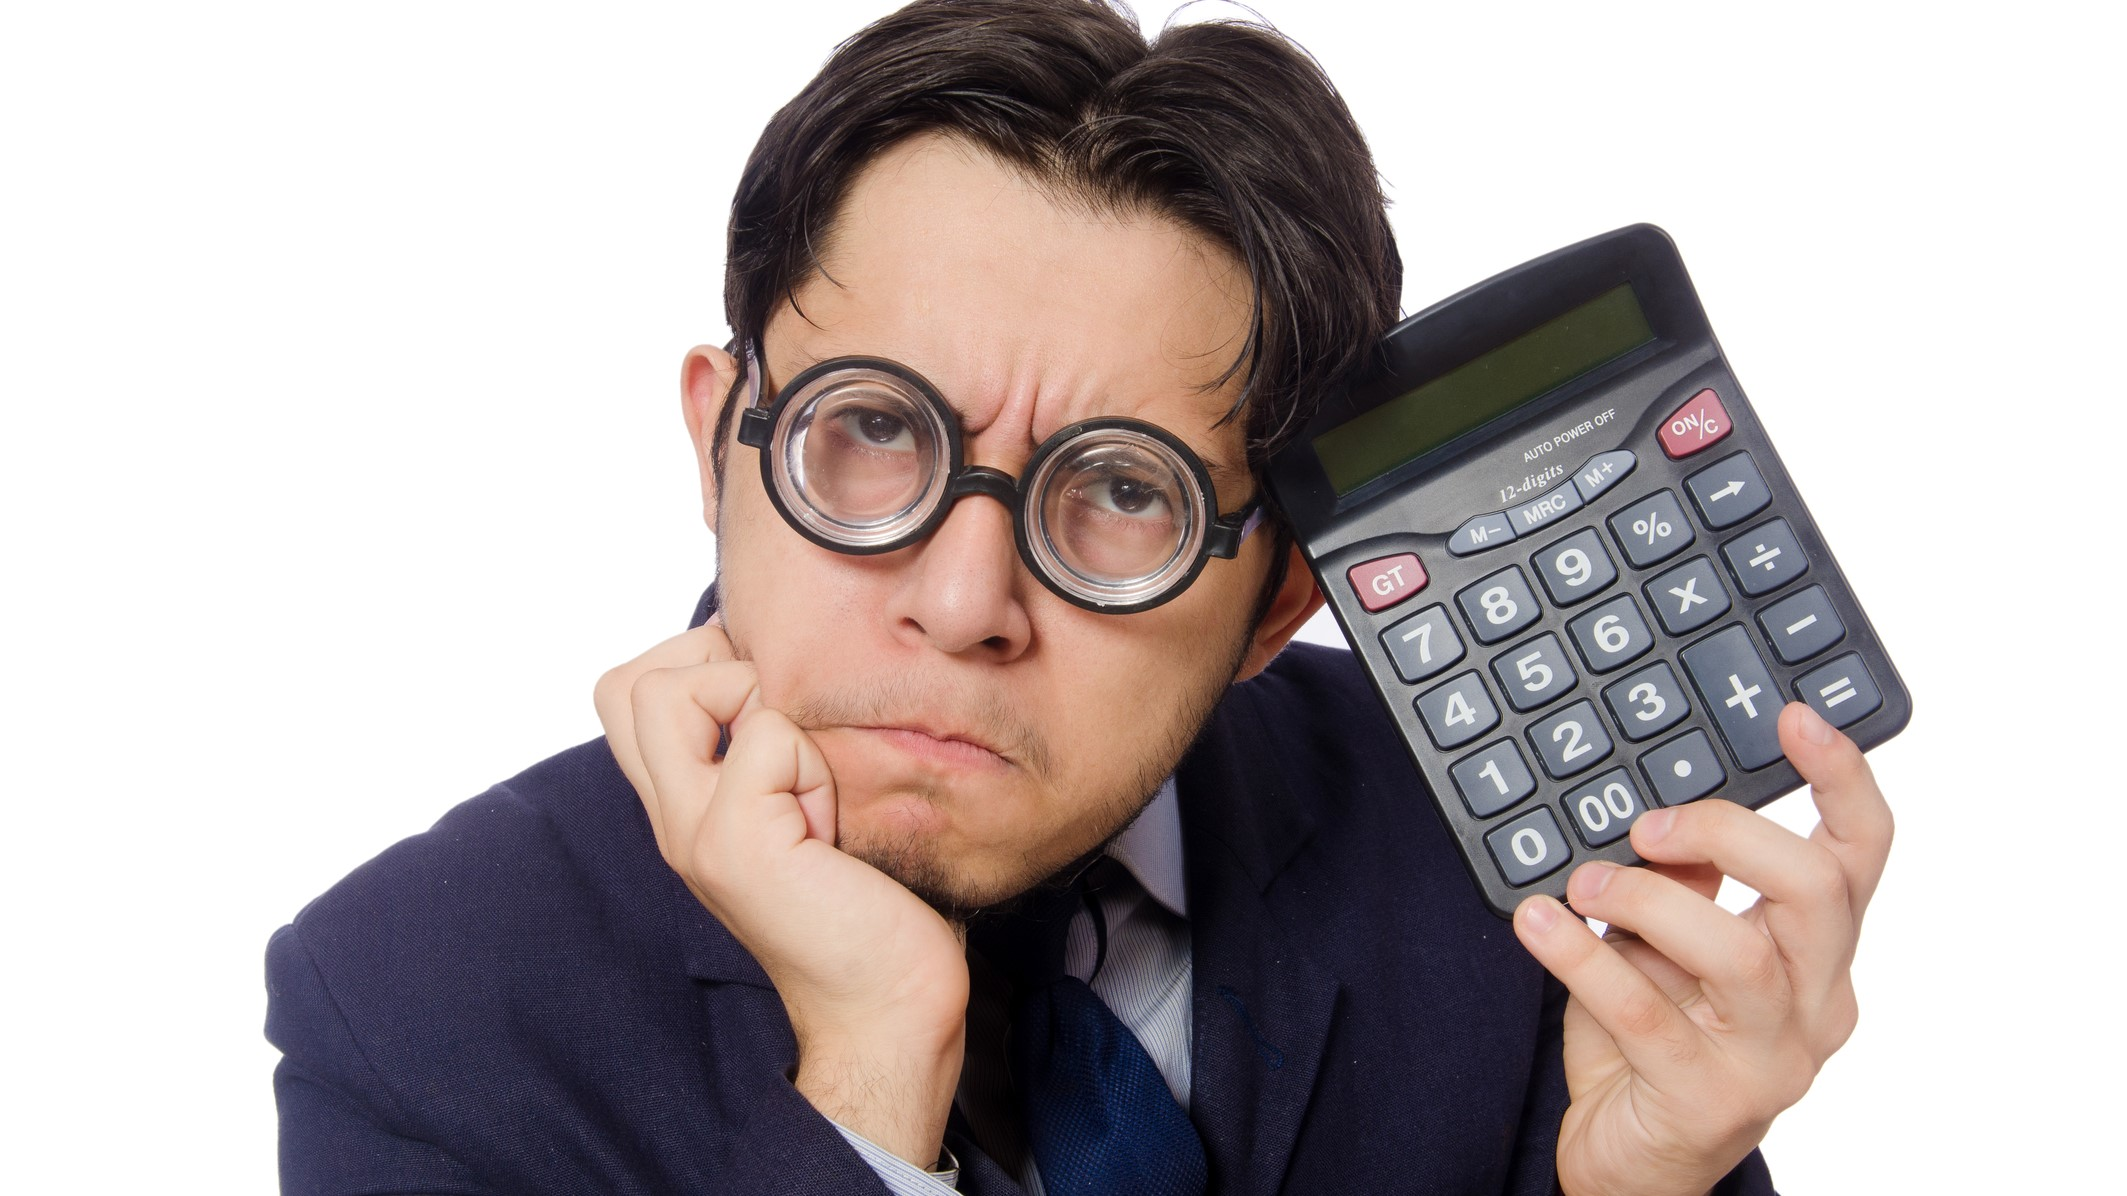 funny calculator dreamstime_m_58142174 (2) - Job Crusher